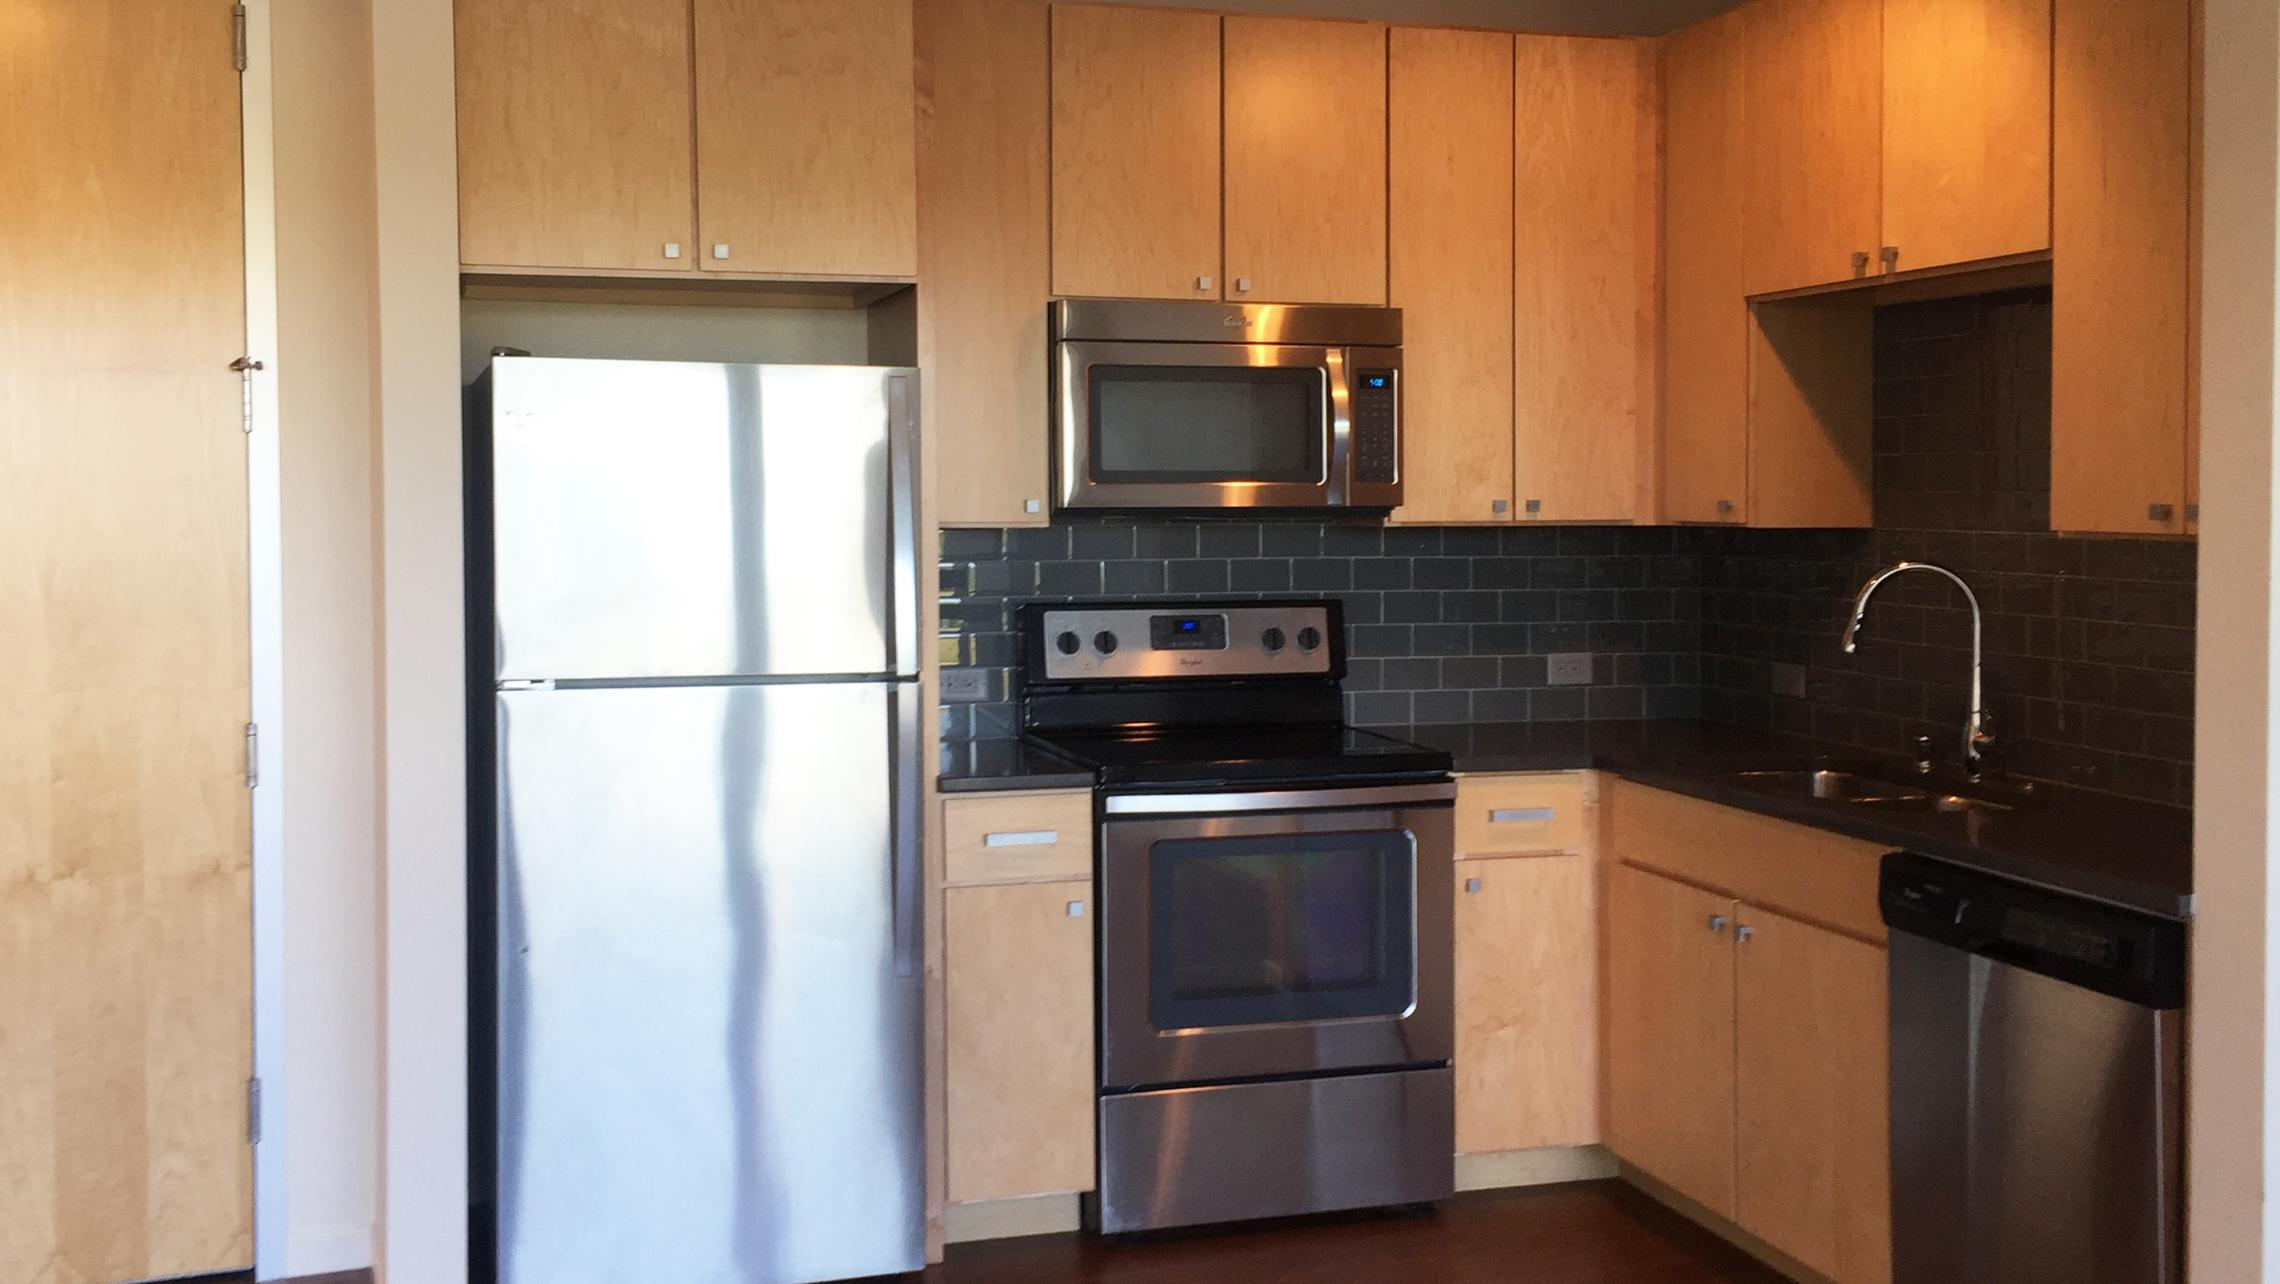 ULI Nine Line Apartment 509 - Kitchen with Stainless Steel Appliances